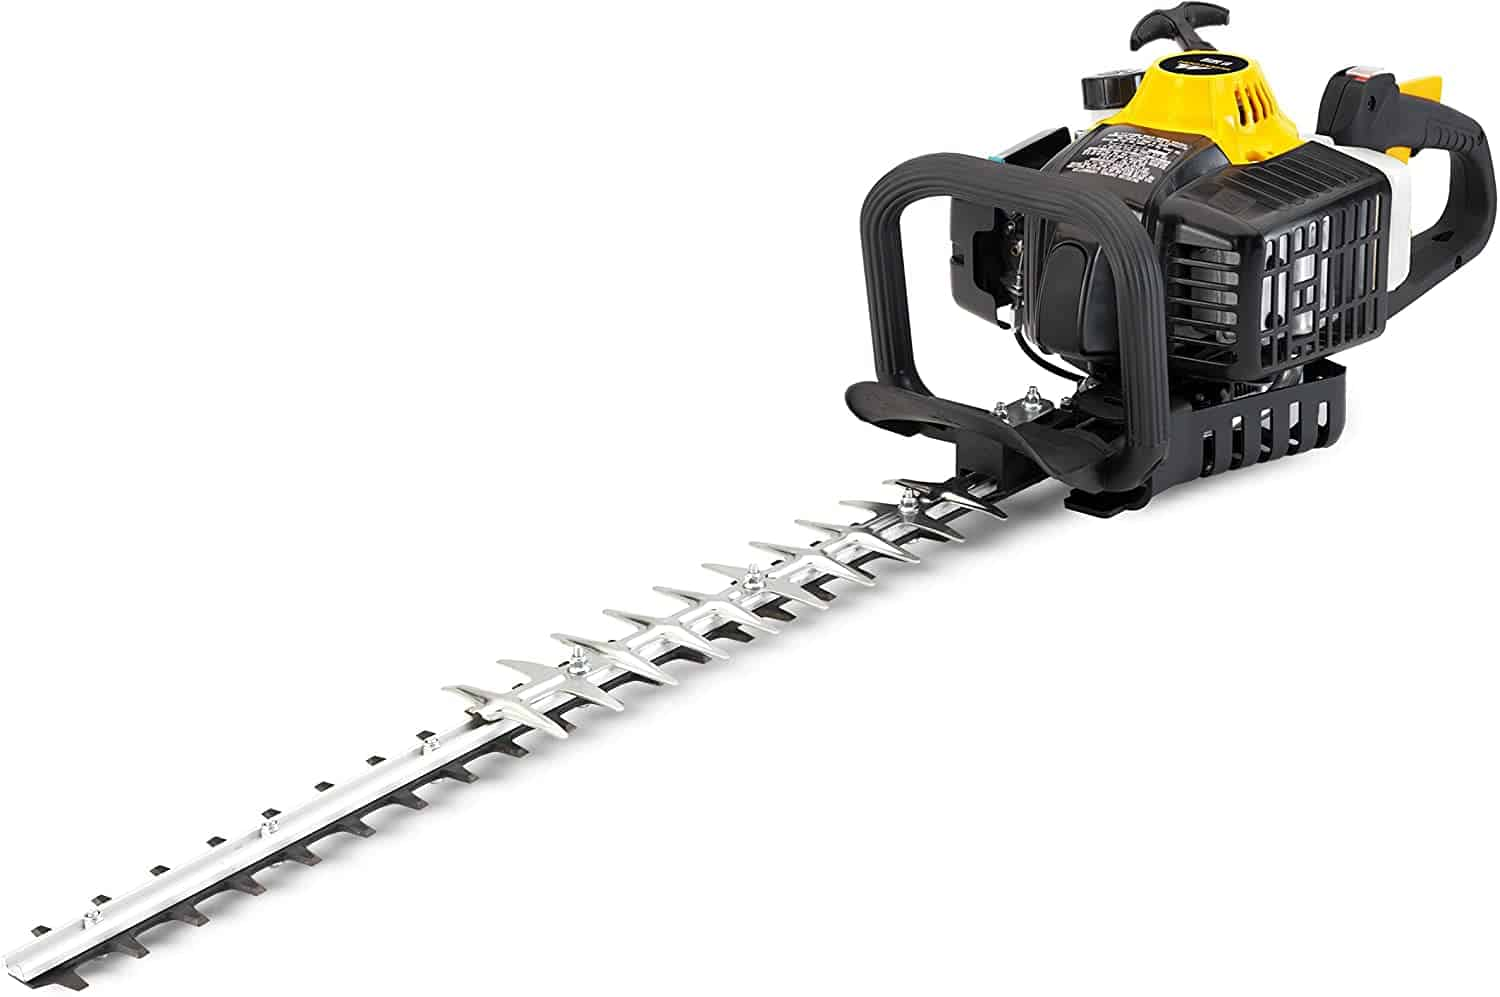 Mcculloch HT 5622 Petrol Hedge Trimmer